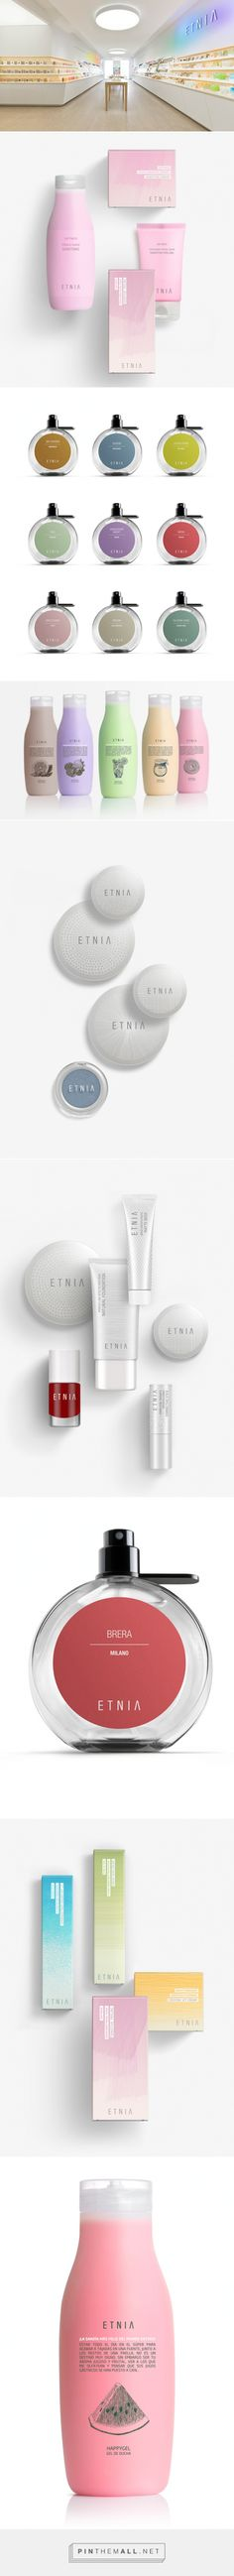 Etnia Cosmetics, un proyecto de diseño global de Lavernia & Cienfuegos not your typical cosmetics #packaging curated by Packaging Diva PD created via http://graffica.info/etnia-cosmetics-lavernia/